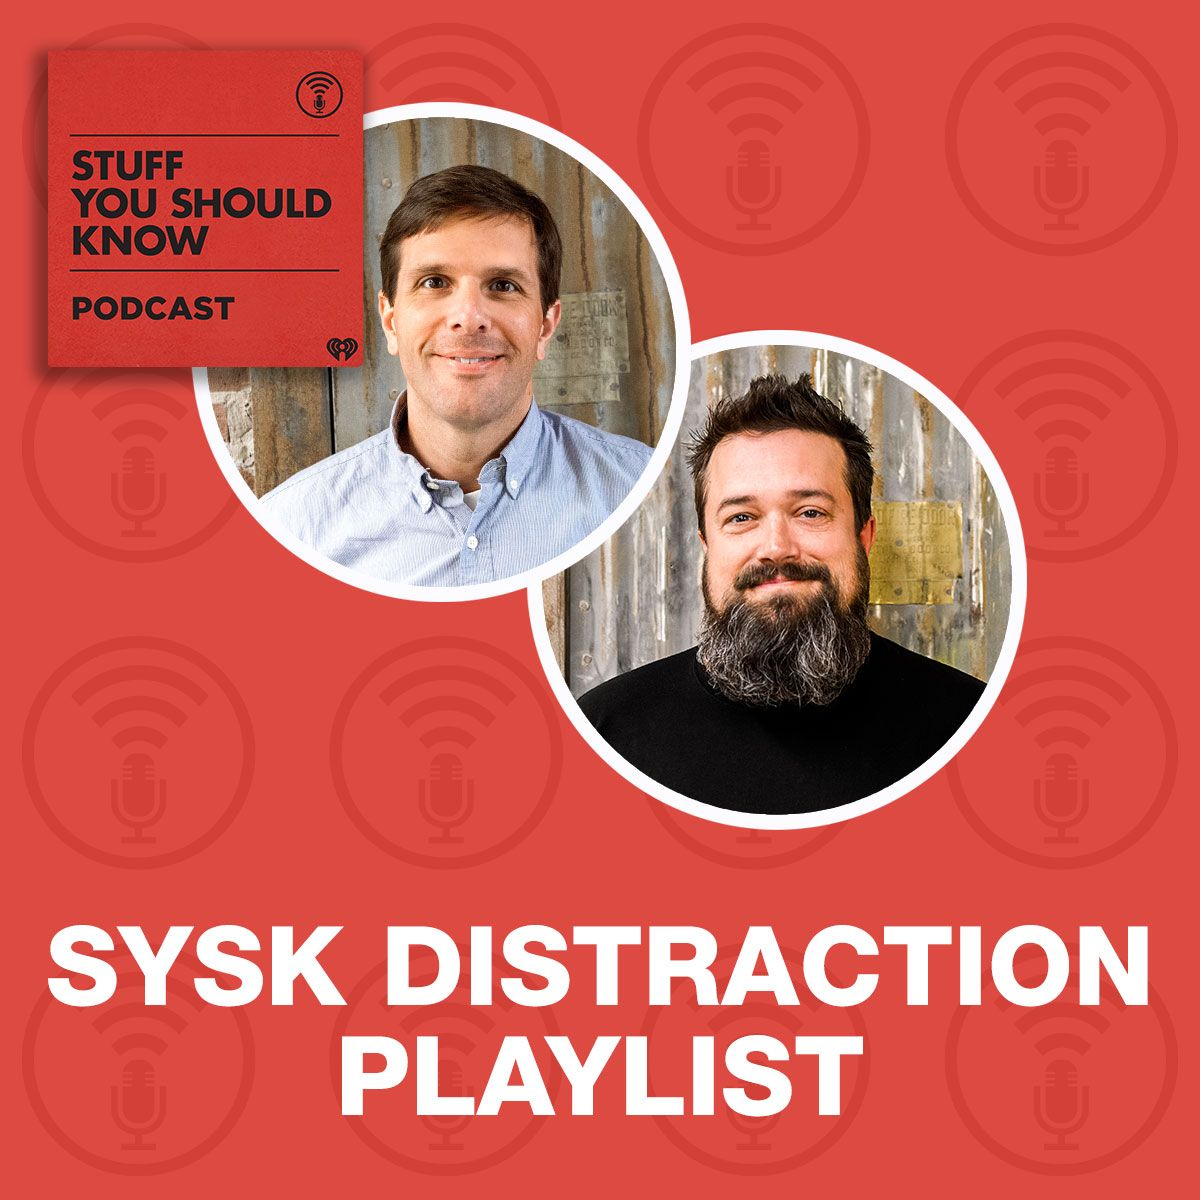 SYSK Distraction Playlist: How Rogue Waves Work